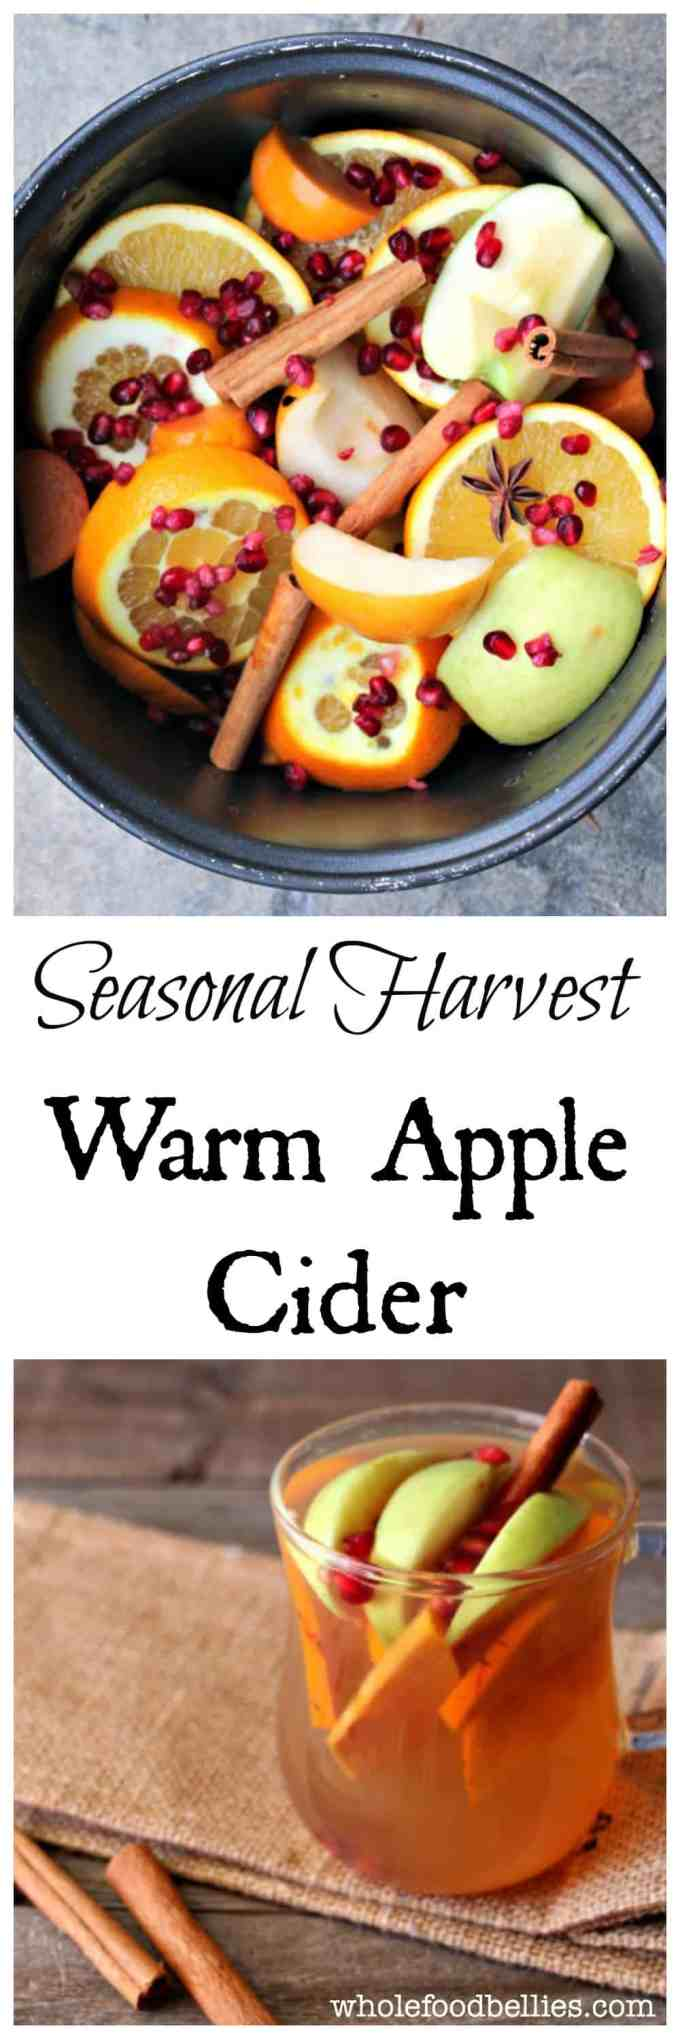 Slow Cooker Hot Apple Cider. Pop everything in the slow cooker, and enjoy a seasonal drink with friends #seasonal #slowcooker #cider